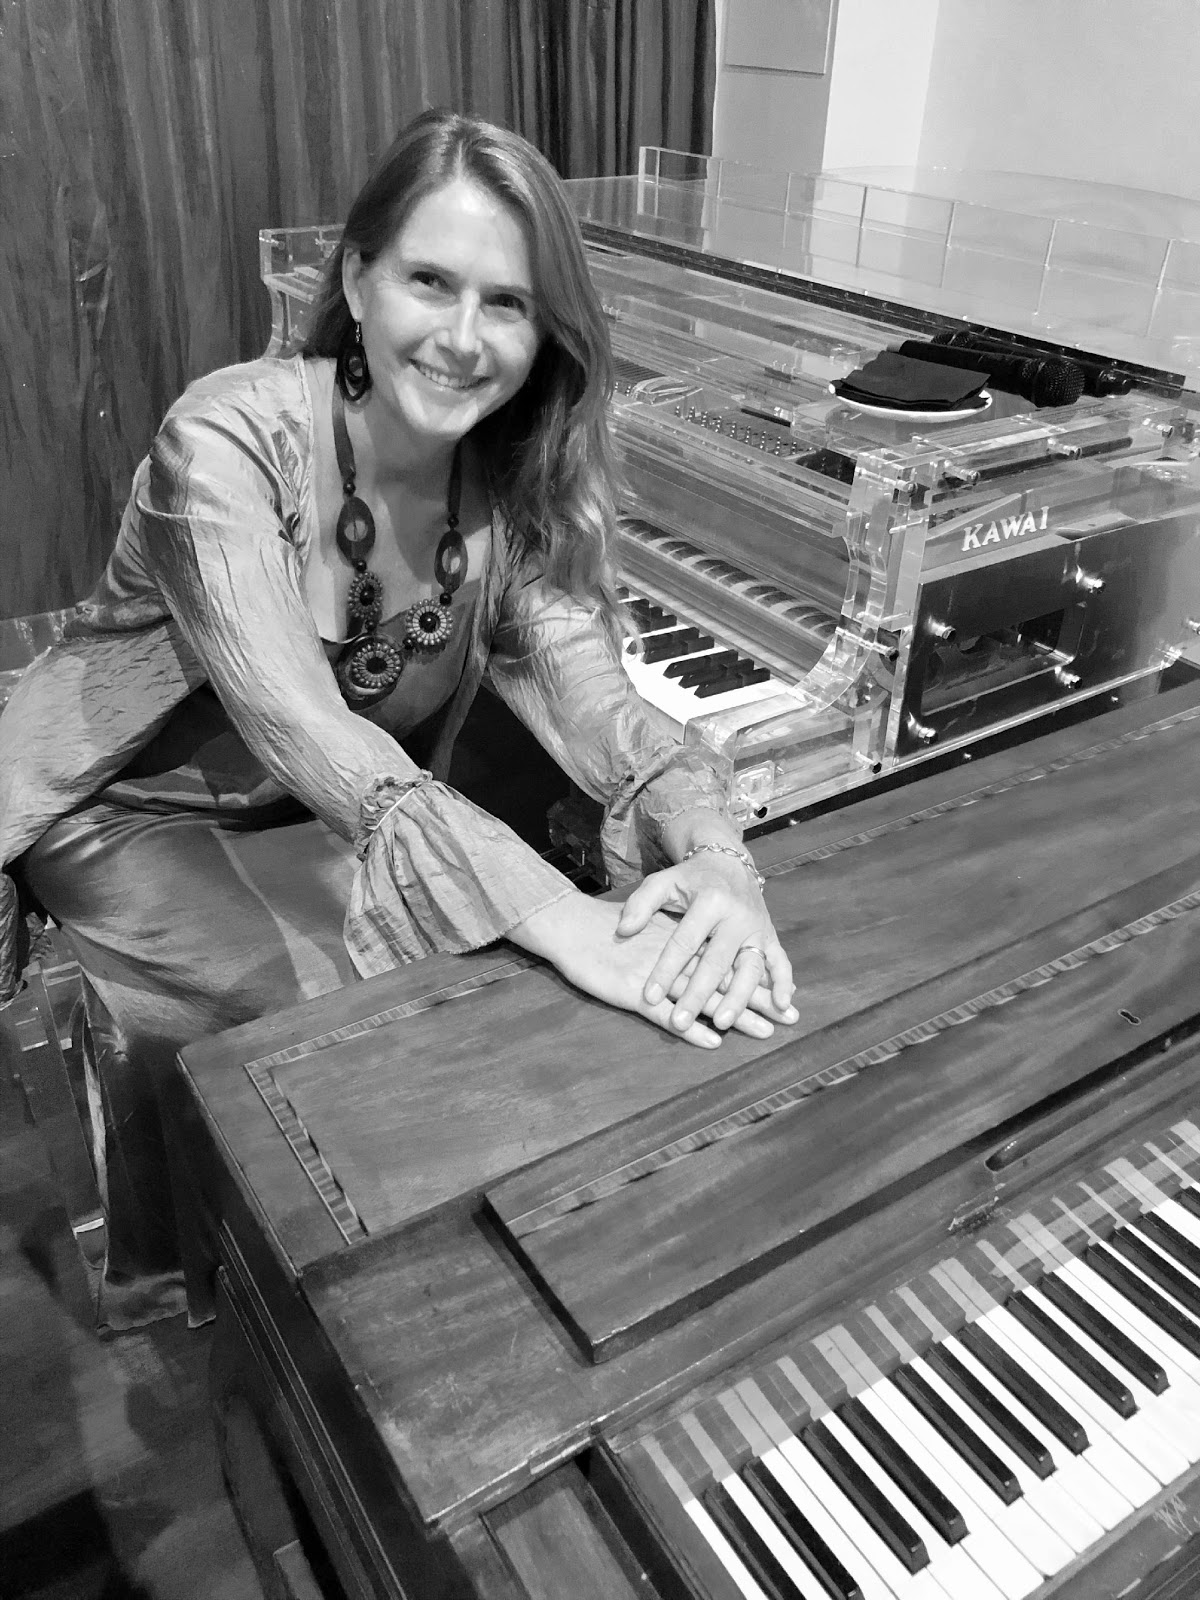 Anneka behind the PianoEasy program